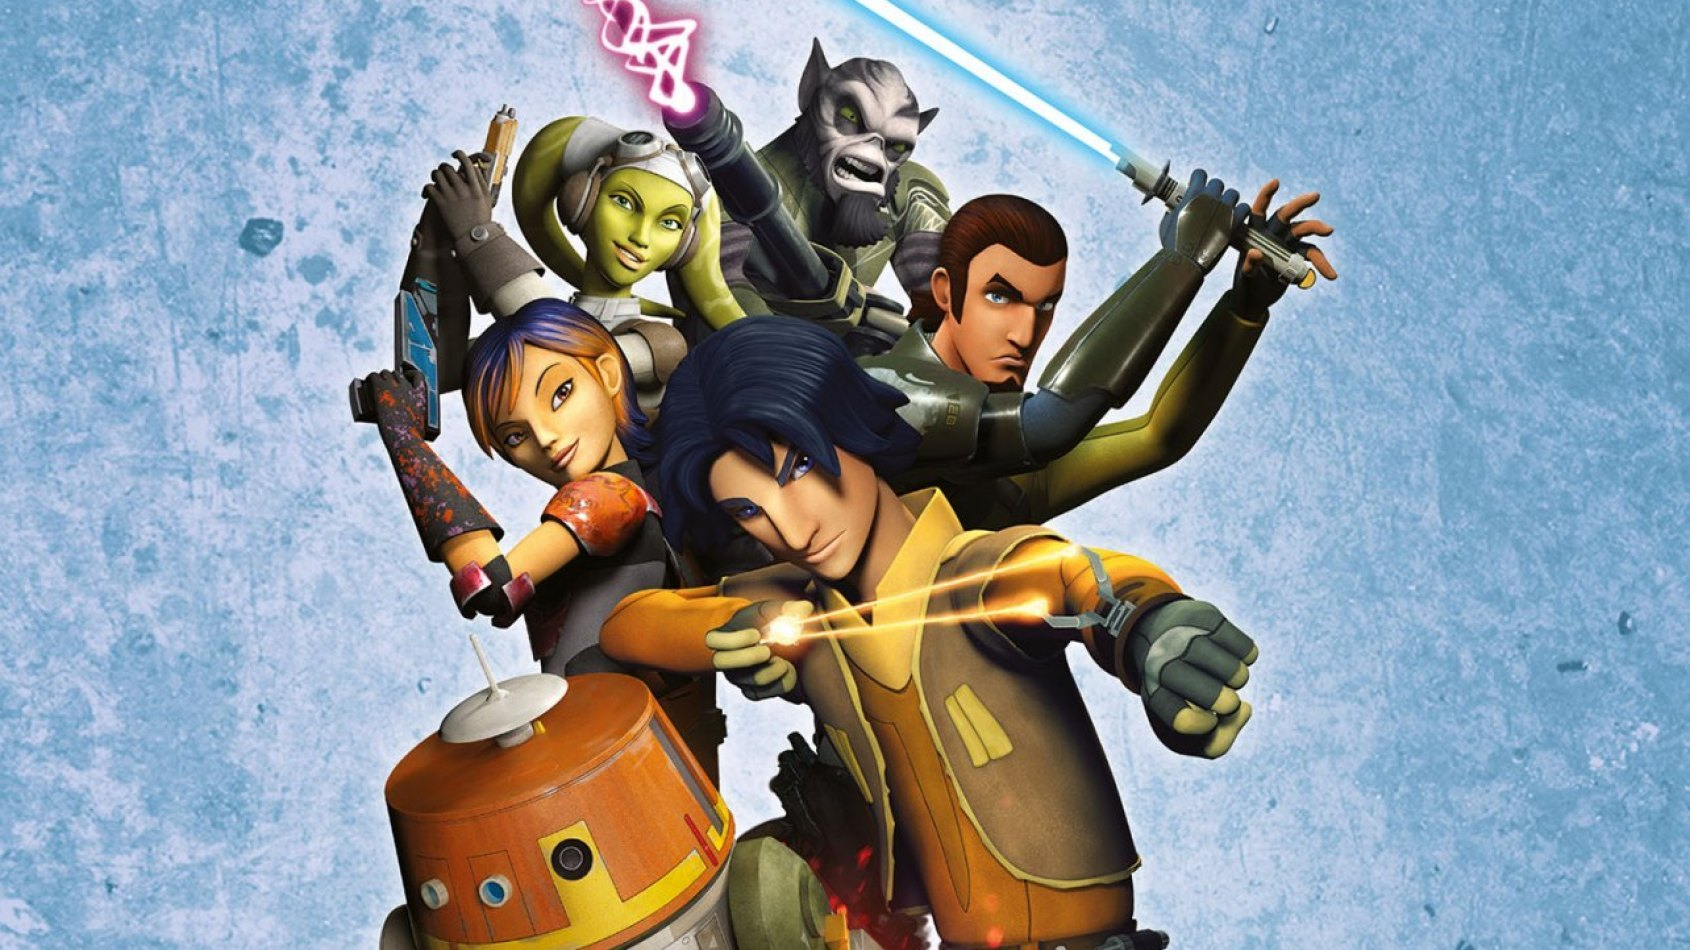 Delcourt : Sortie de Star Wars Rebels 4